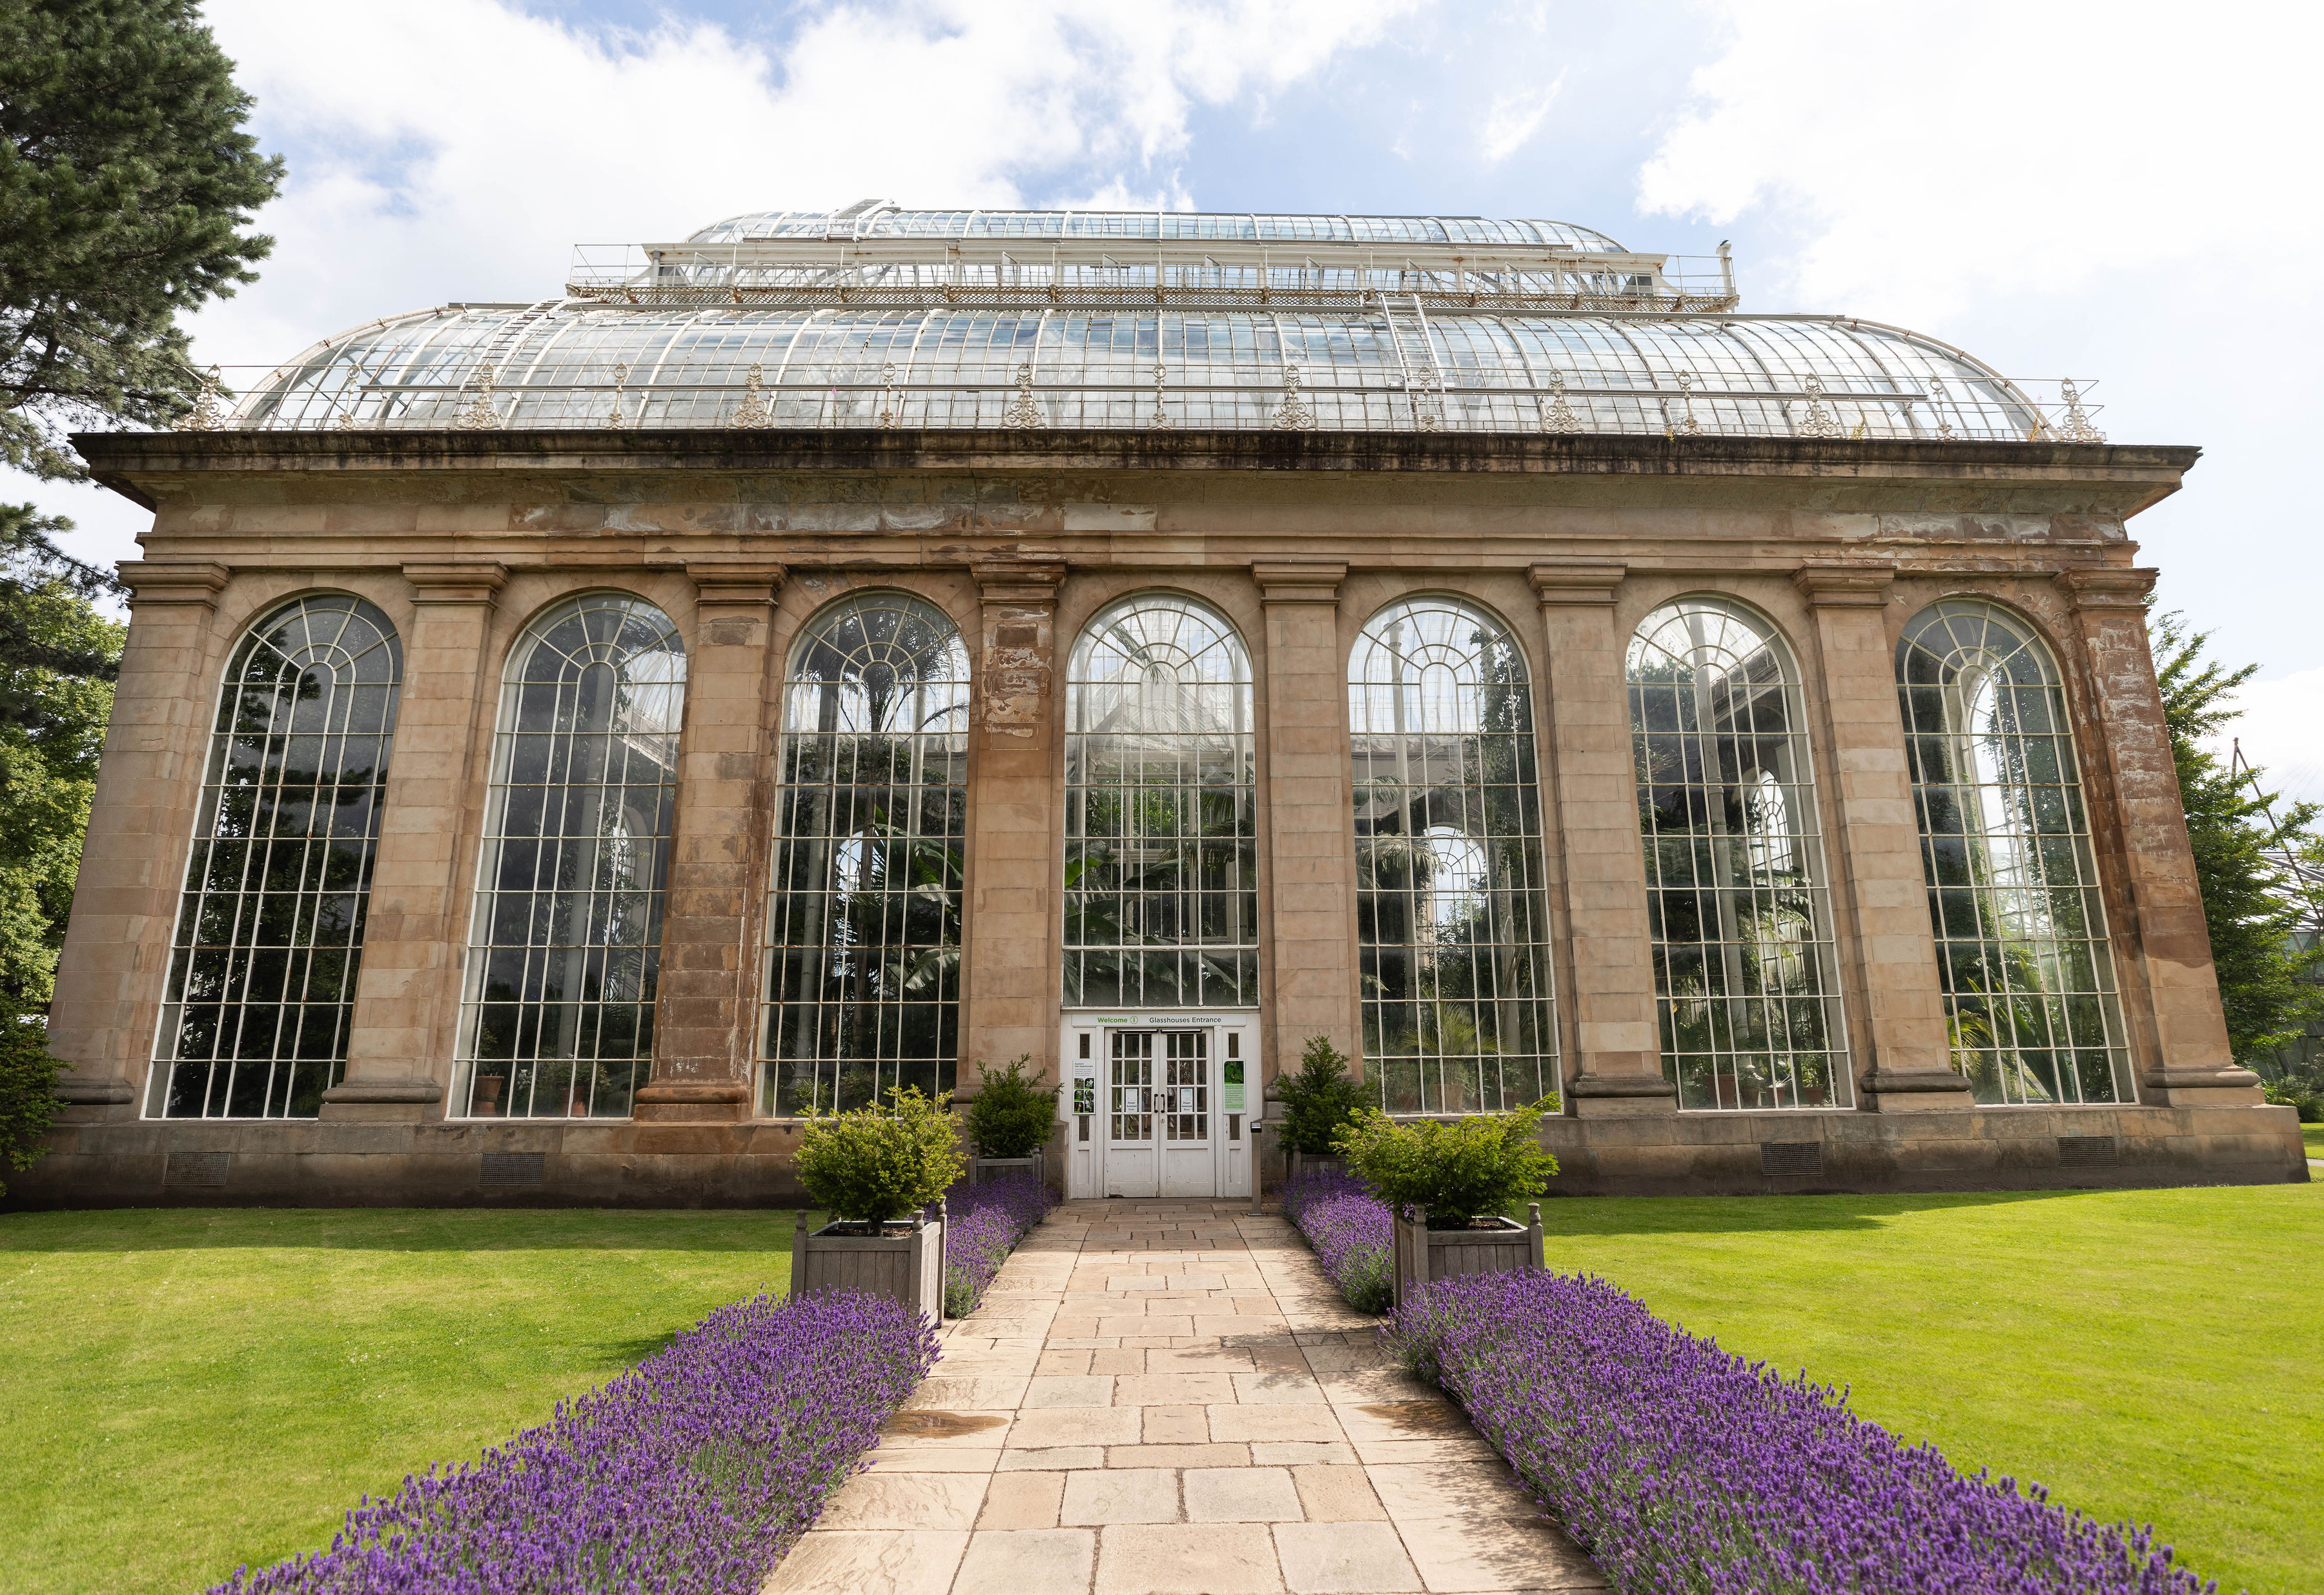 Temperate Palm House Glasshouse at Royal Botanic Gardens Edinburgh in Edinburgh, Scotland United Kingdom